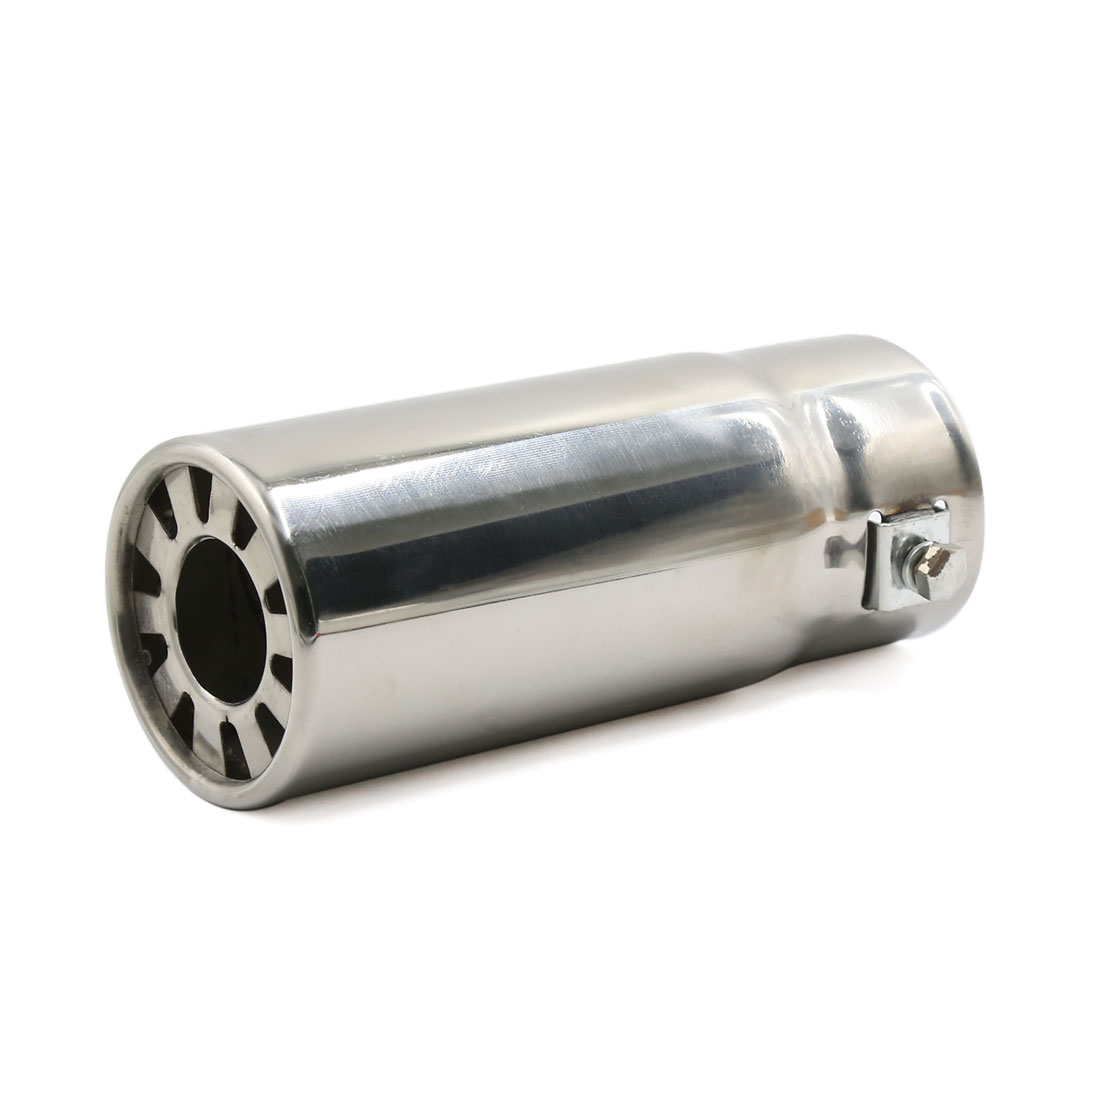 Sliver Tone Stainless Steel Round Tip Exhaust Muffler Silencer Tail Pipe for Car